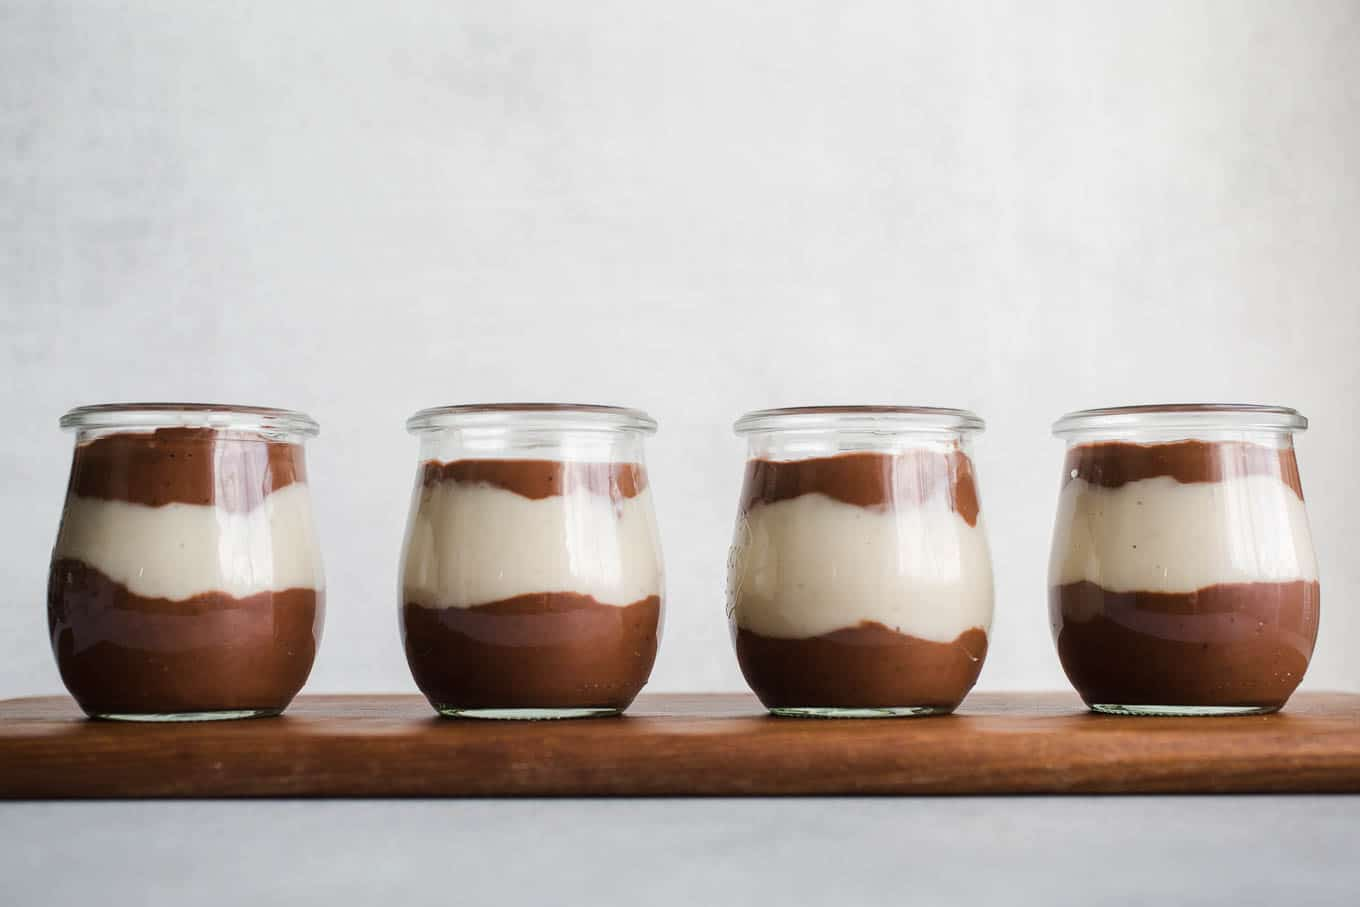 Vegan Chocolate Vanilla Pudding Cups made with rich chocolate cocoa powder, coconut milk, almond milk, maple syrup, and pure vanilla extract. An easy gluten-free, dairy-free pudding recipe!